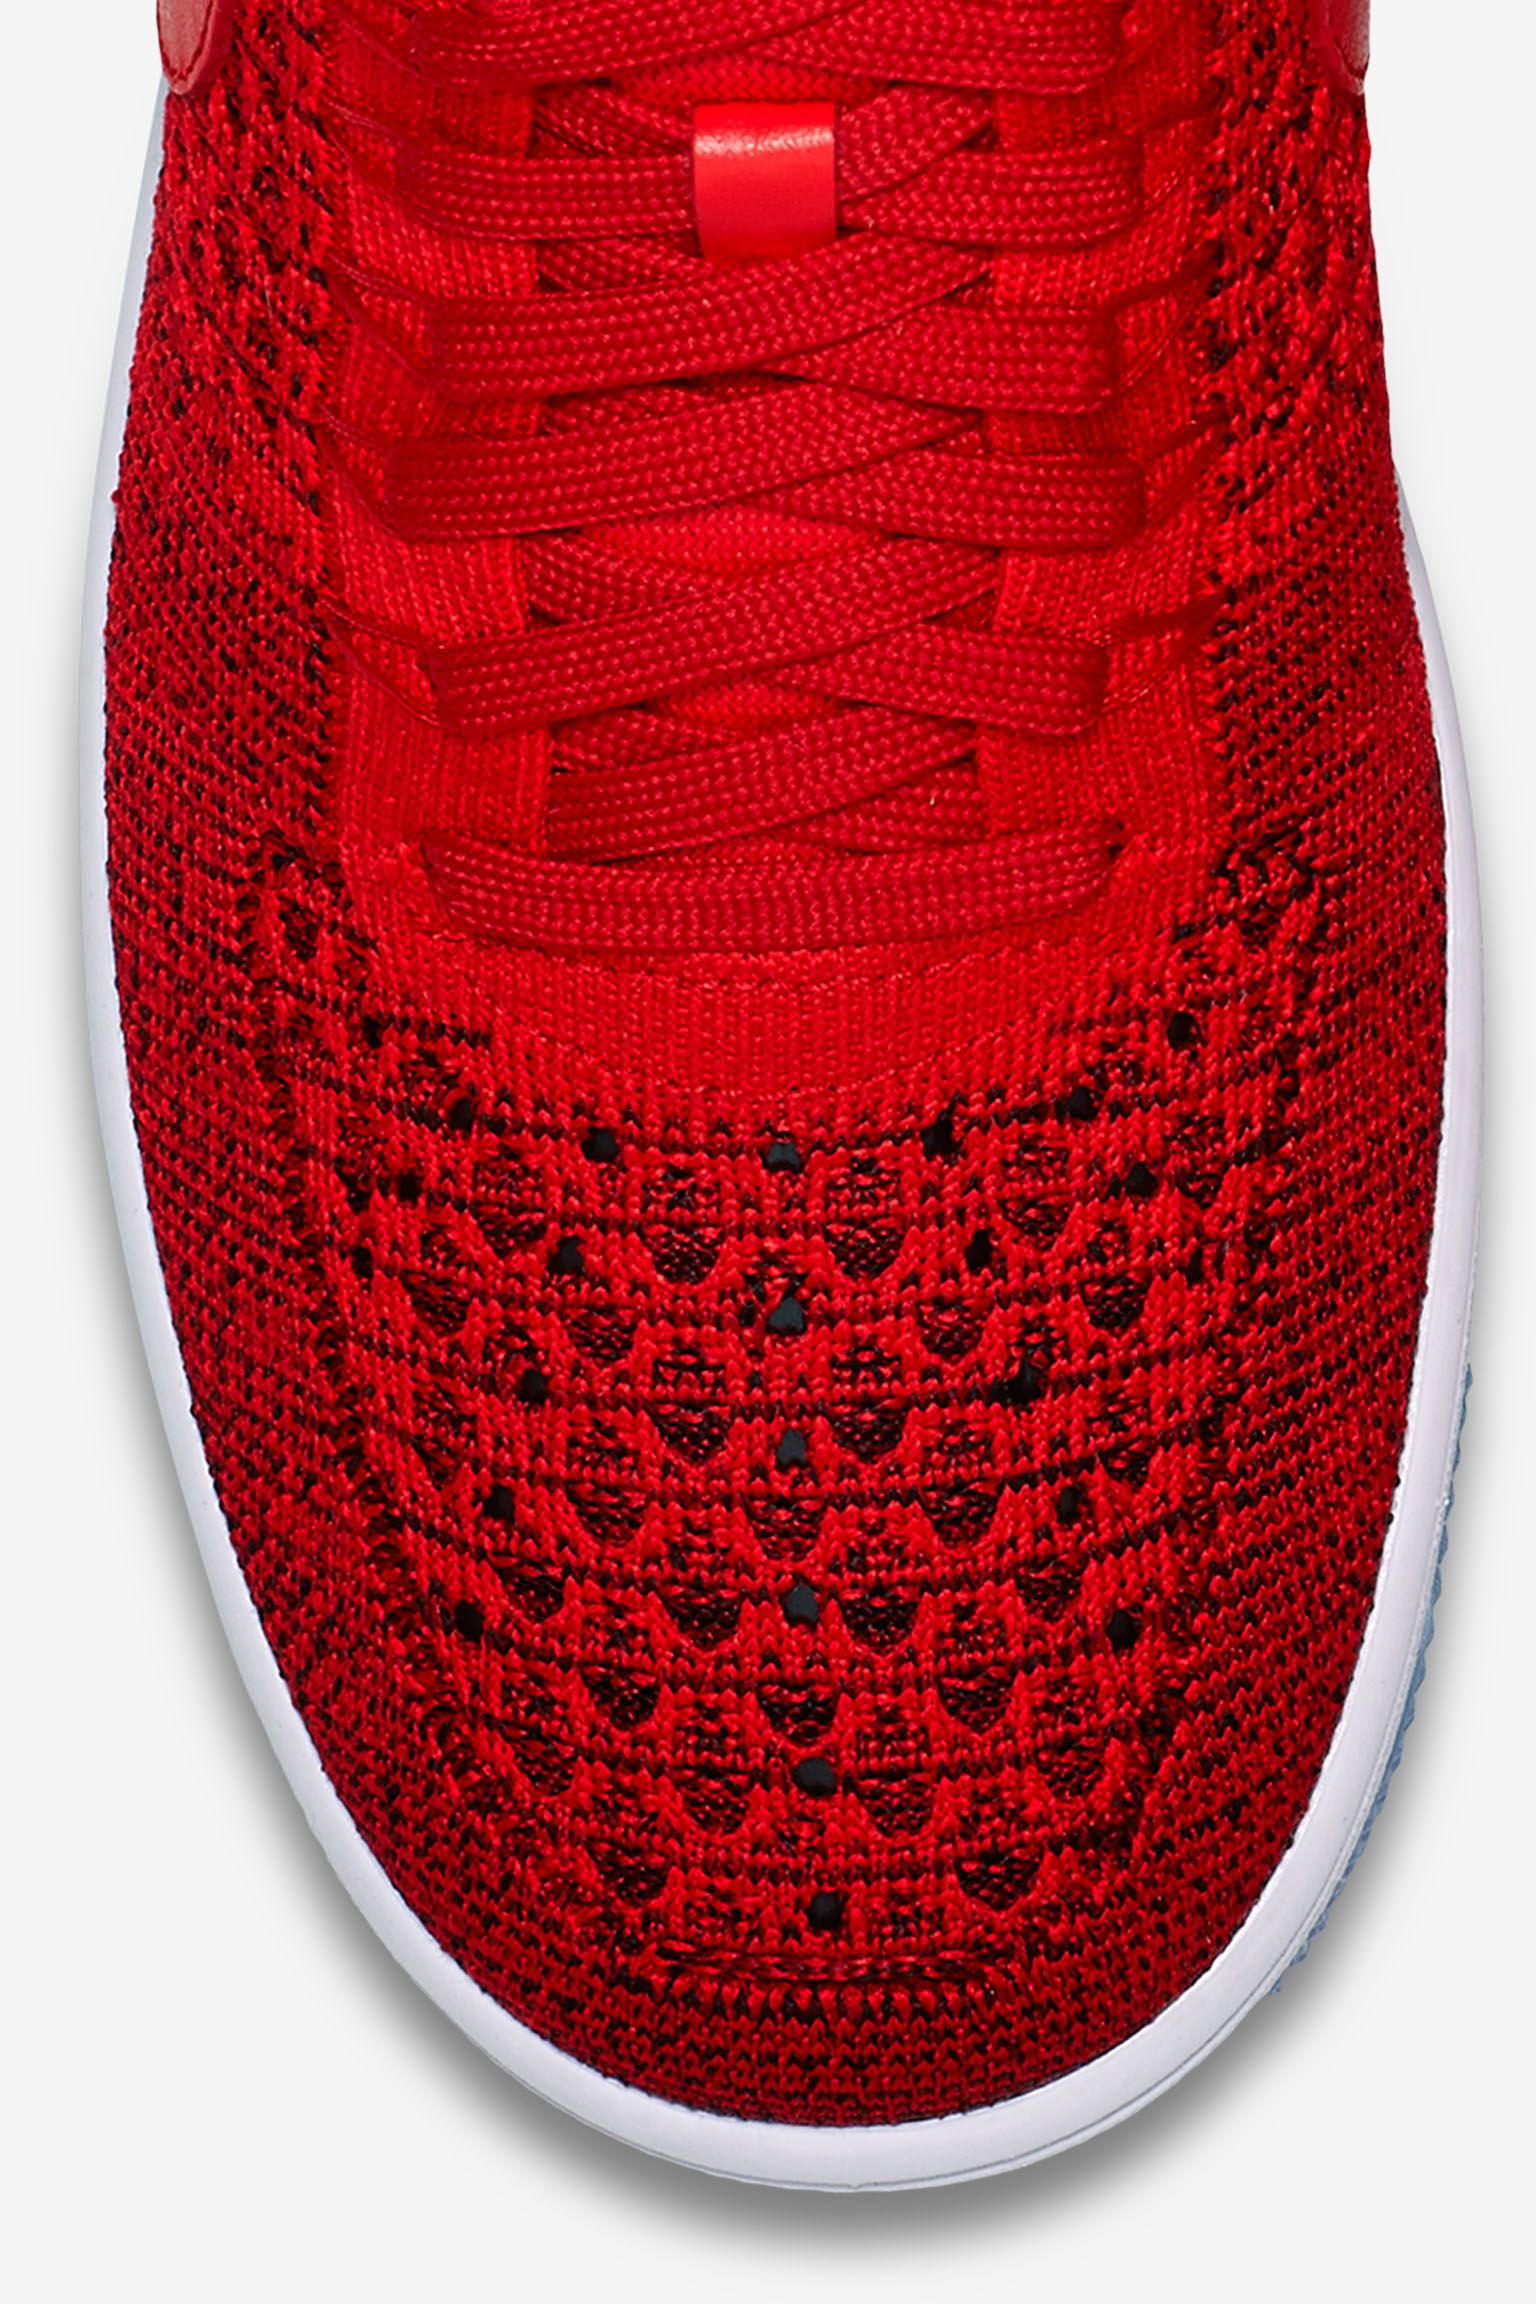 Nike Air Force 1 Ultra Flyknit Low 'University Red' Release Date